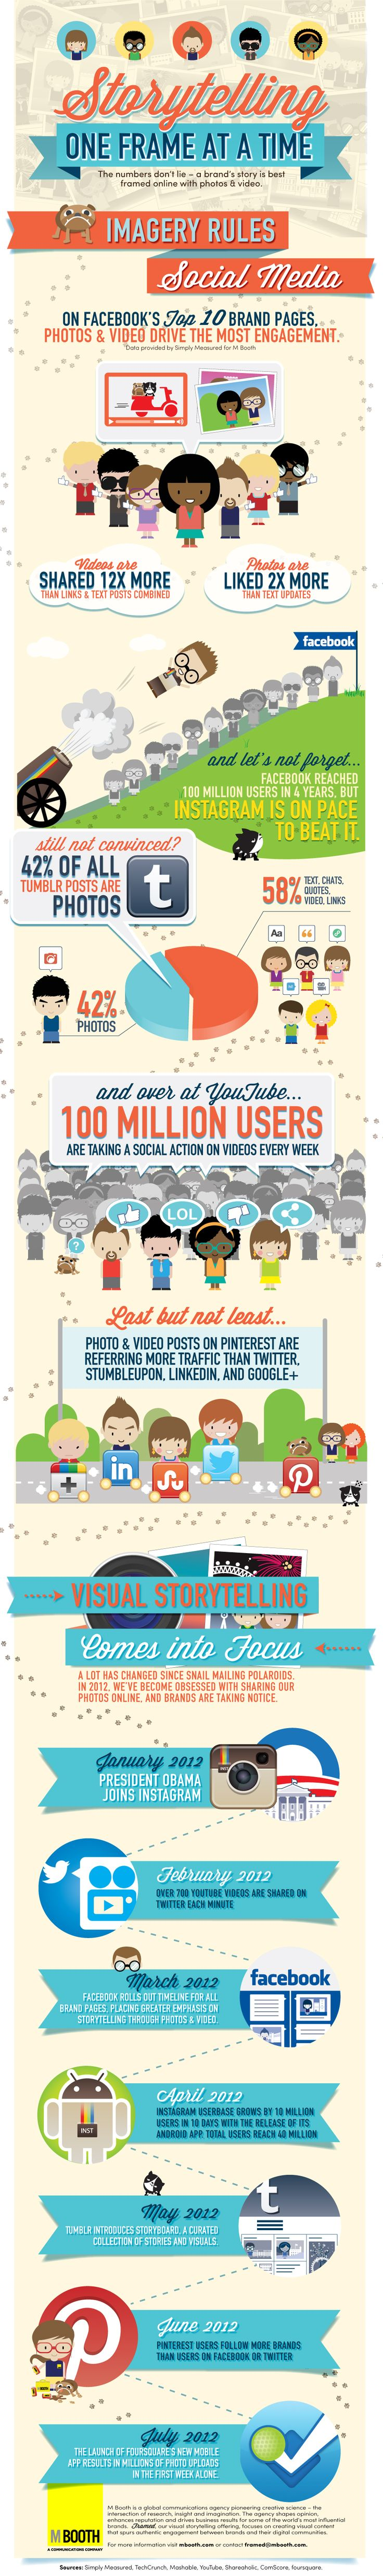 Visual content has been on a rapid upward trajectory over the last 12 months. Social media platforms such as #Pinterest and #Instagram have taken the social media world by storm. Instagram announced in July that it had acquired 80 million users. To put some further perspective on its adoption and growth, the visual social media network is now being used by 40% of the worlds top 100 brands. #VisualStorytelling